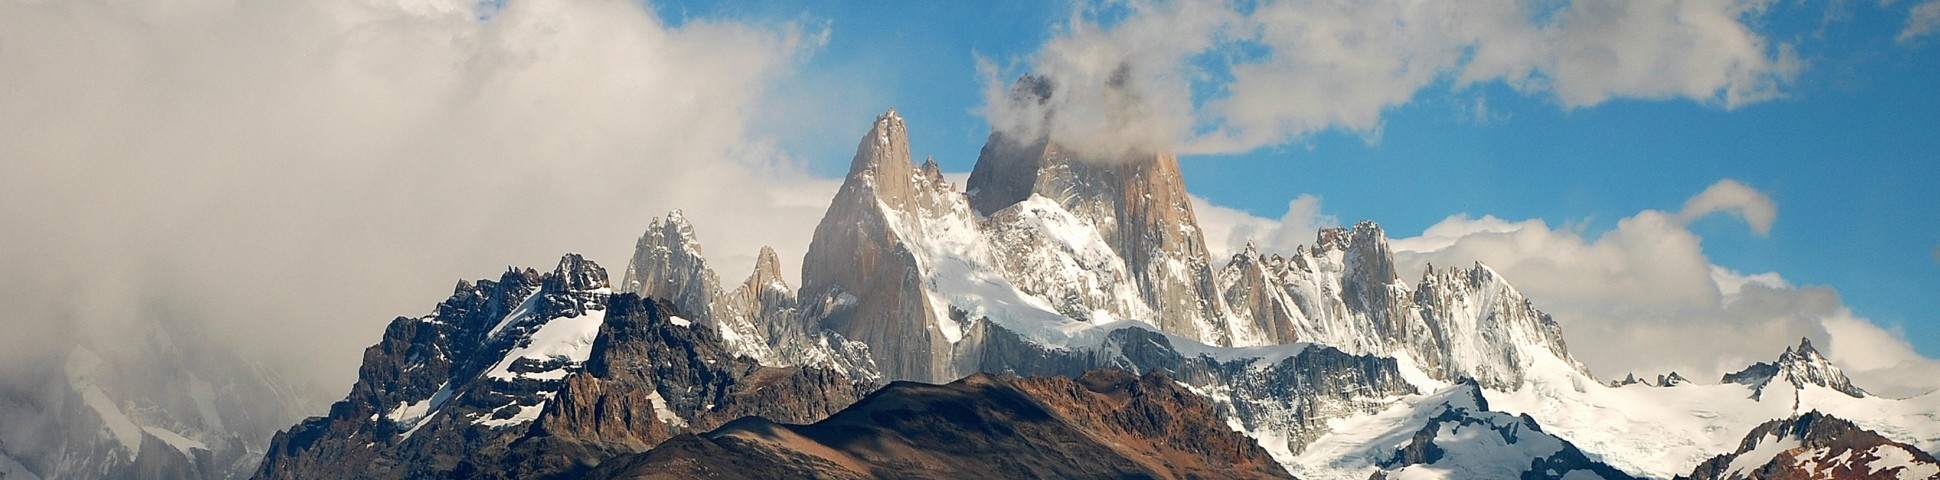 Overlanding and Hiking in Patagonia Tour